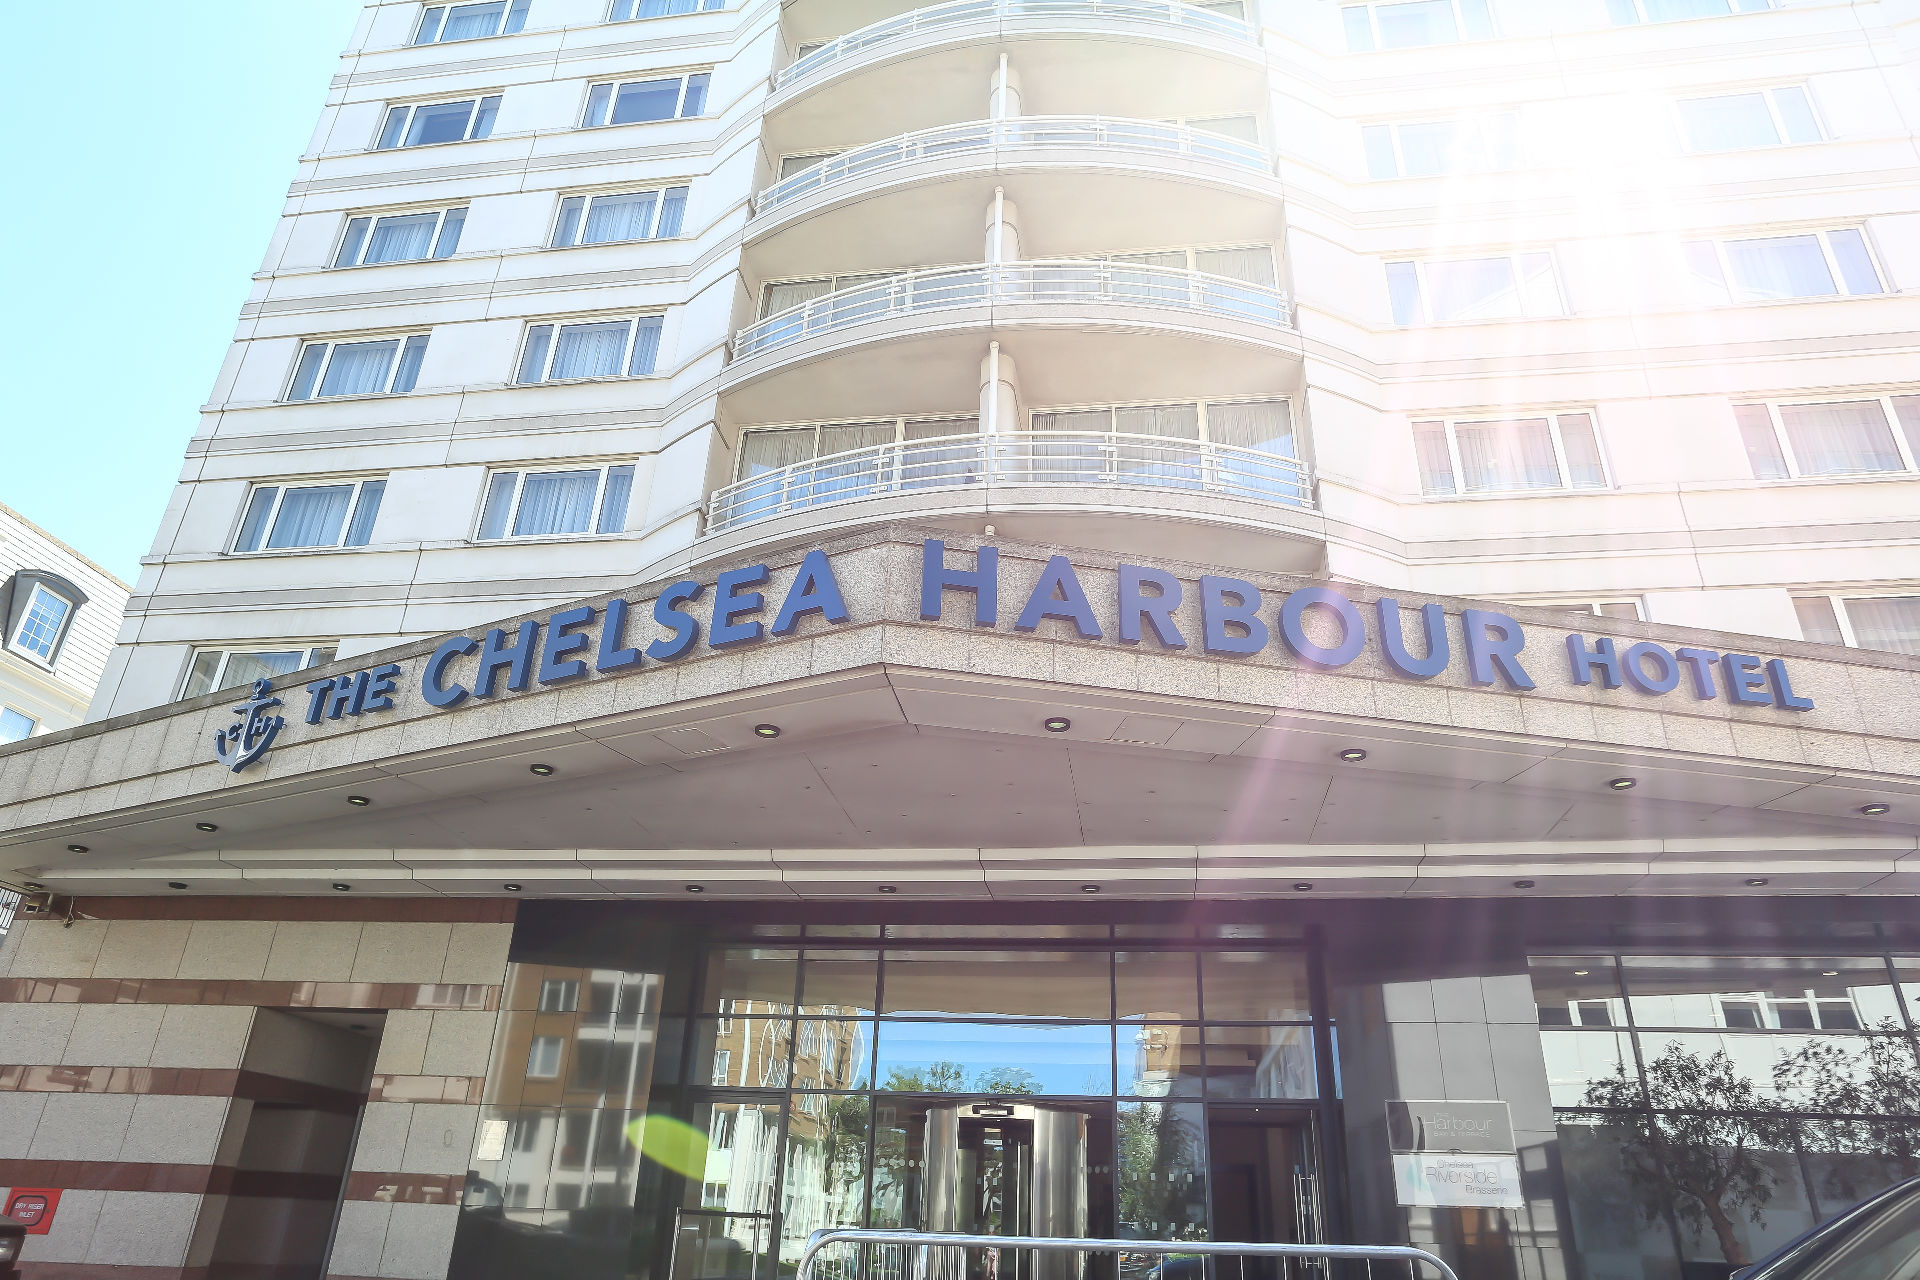 The Chelsea Harbour Hotel Venues